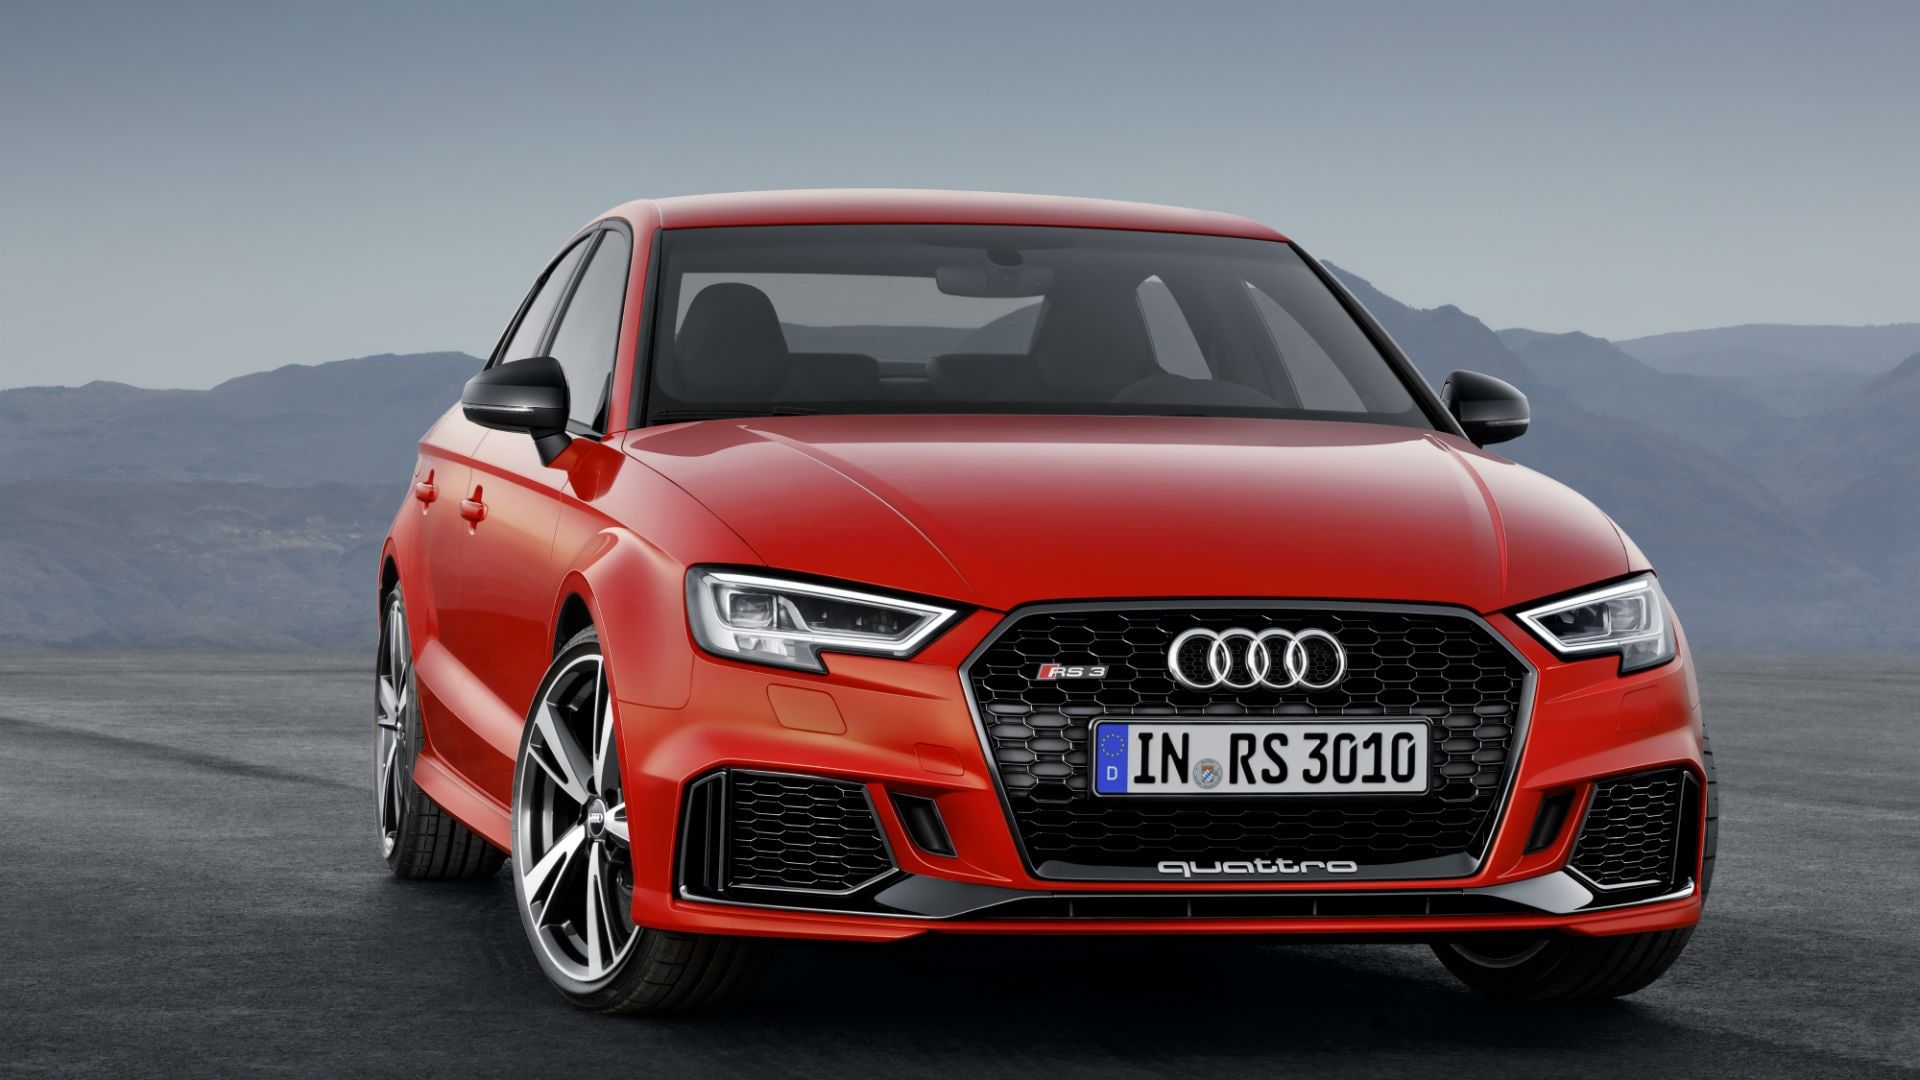 on in midtown vehicles update audi for event offers htm header sale toronto into spring